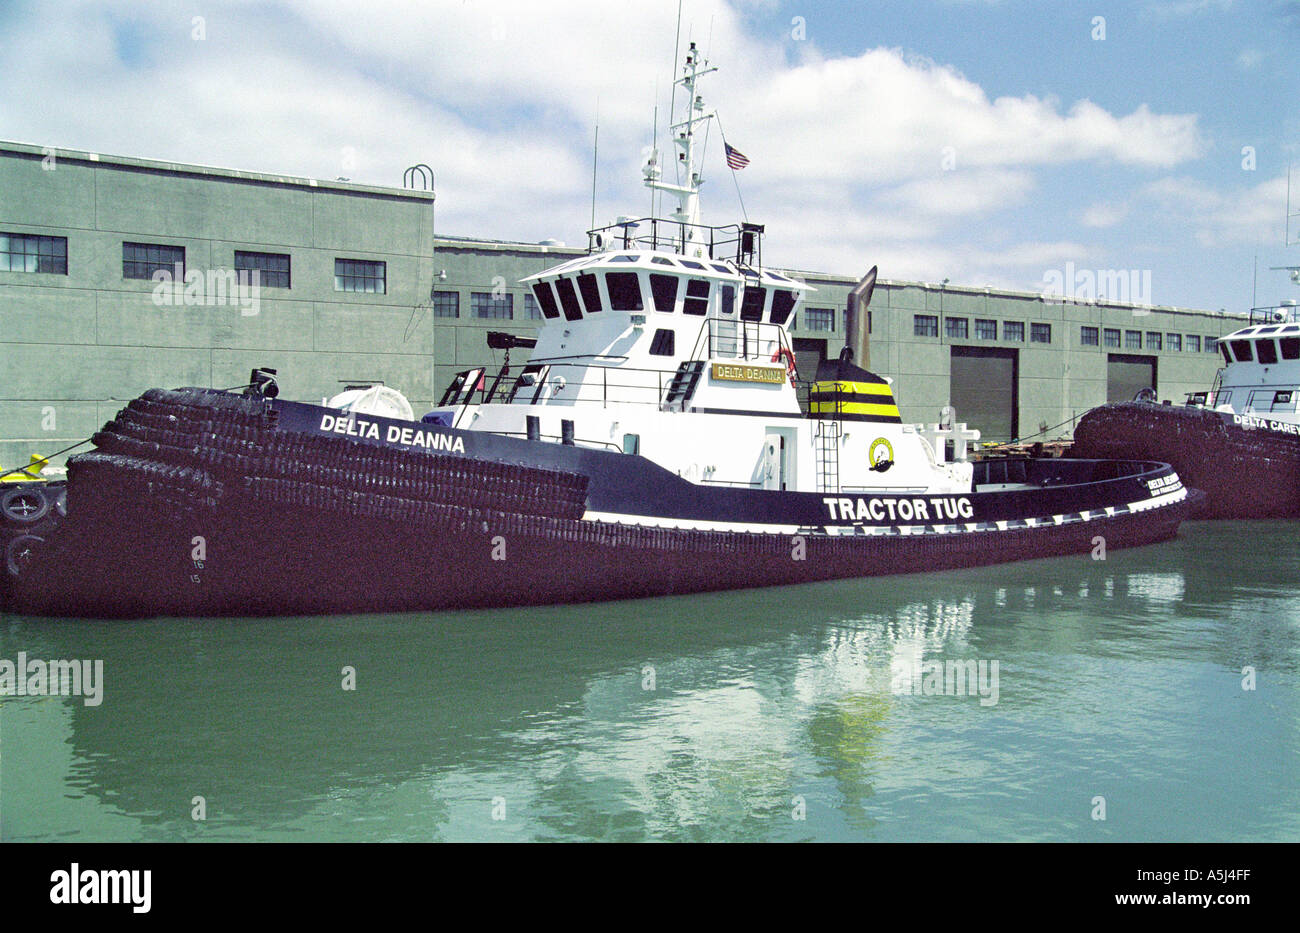 Tugboats in San Francisco California horbour - Stock Image